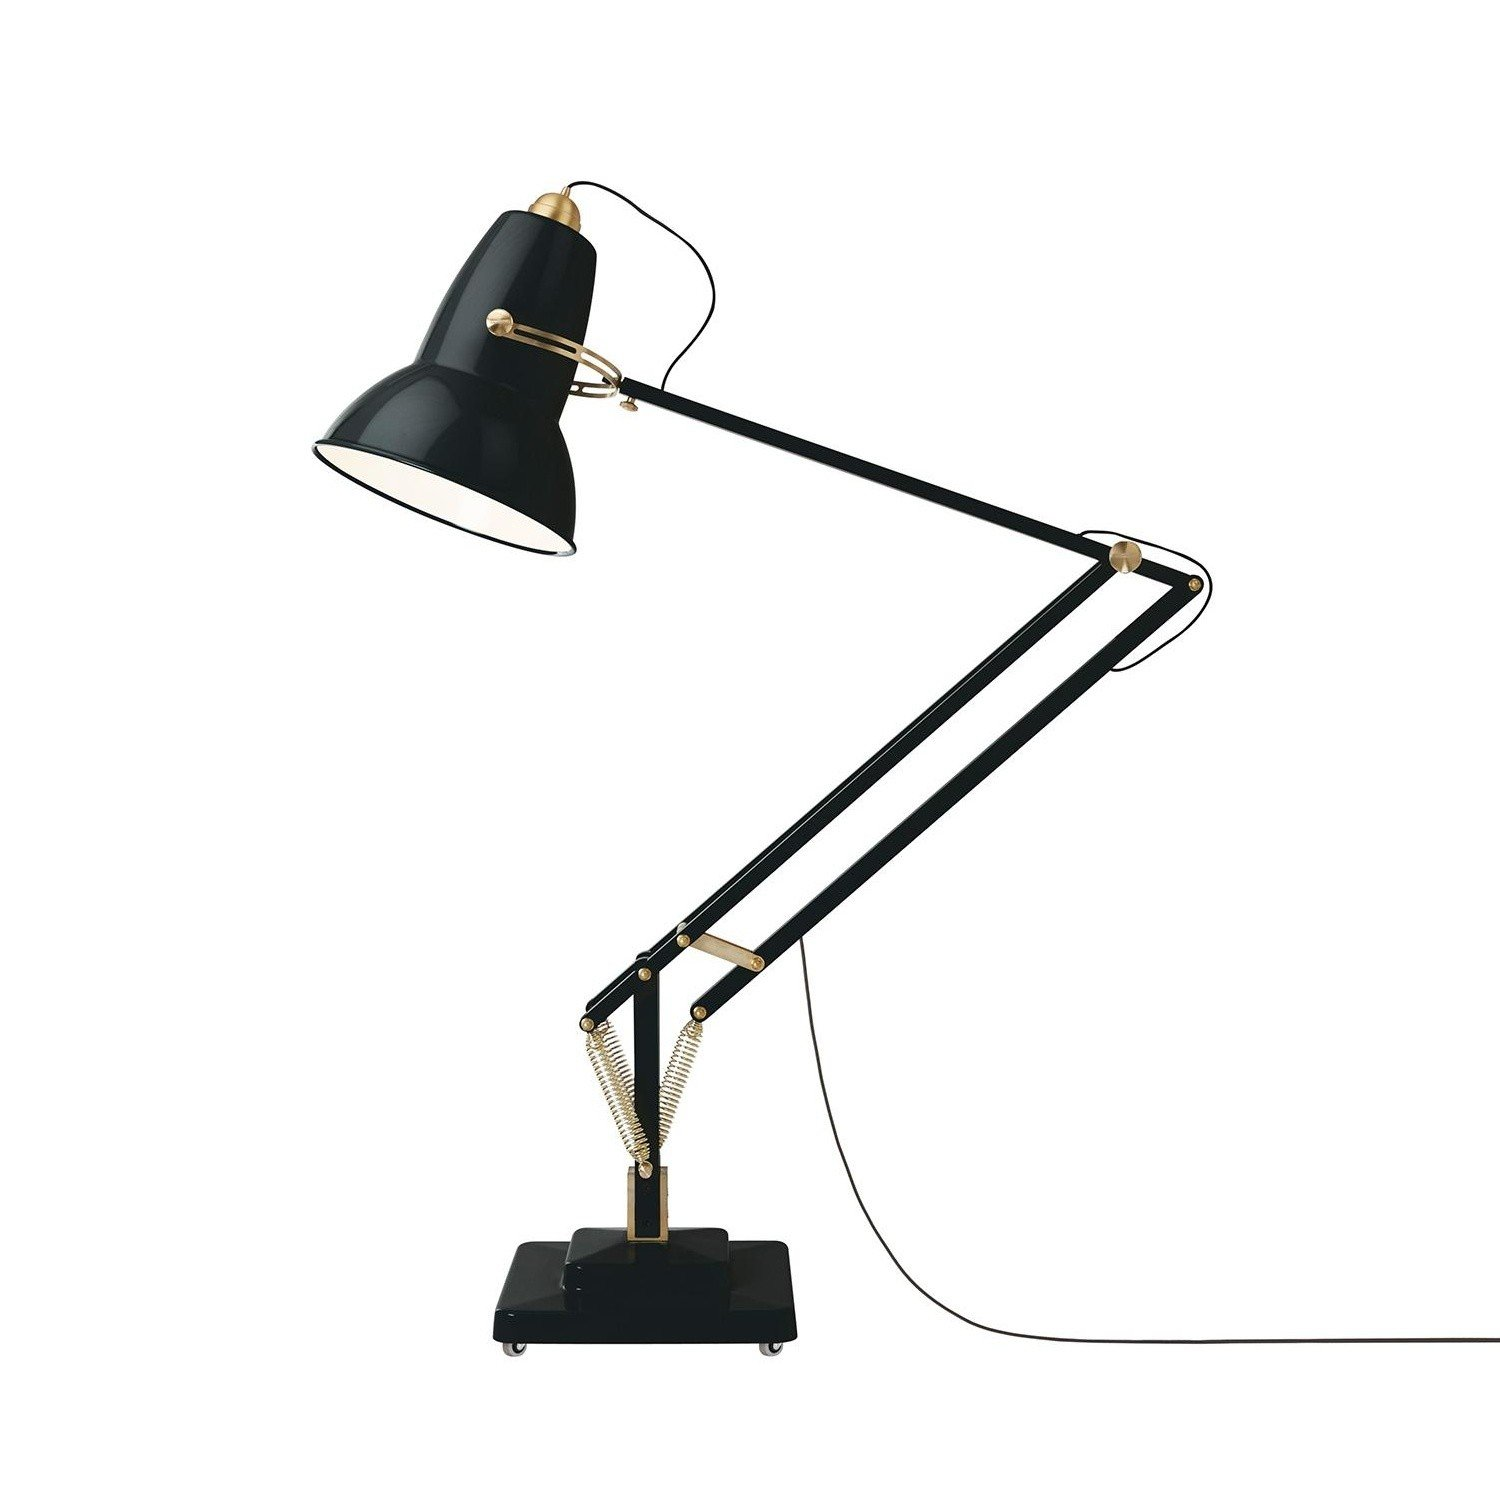 braid uk co lighting dp cable with white original anglepoise black lamp desk amazon okagl